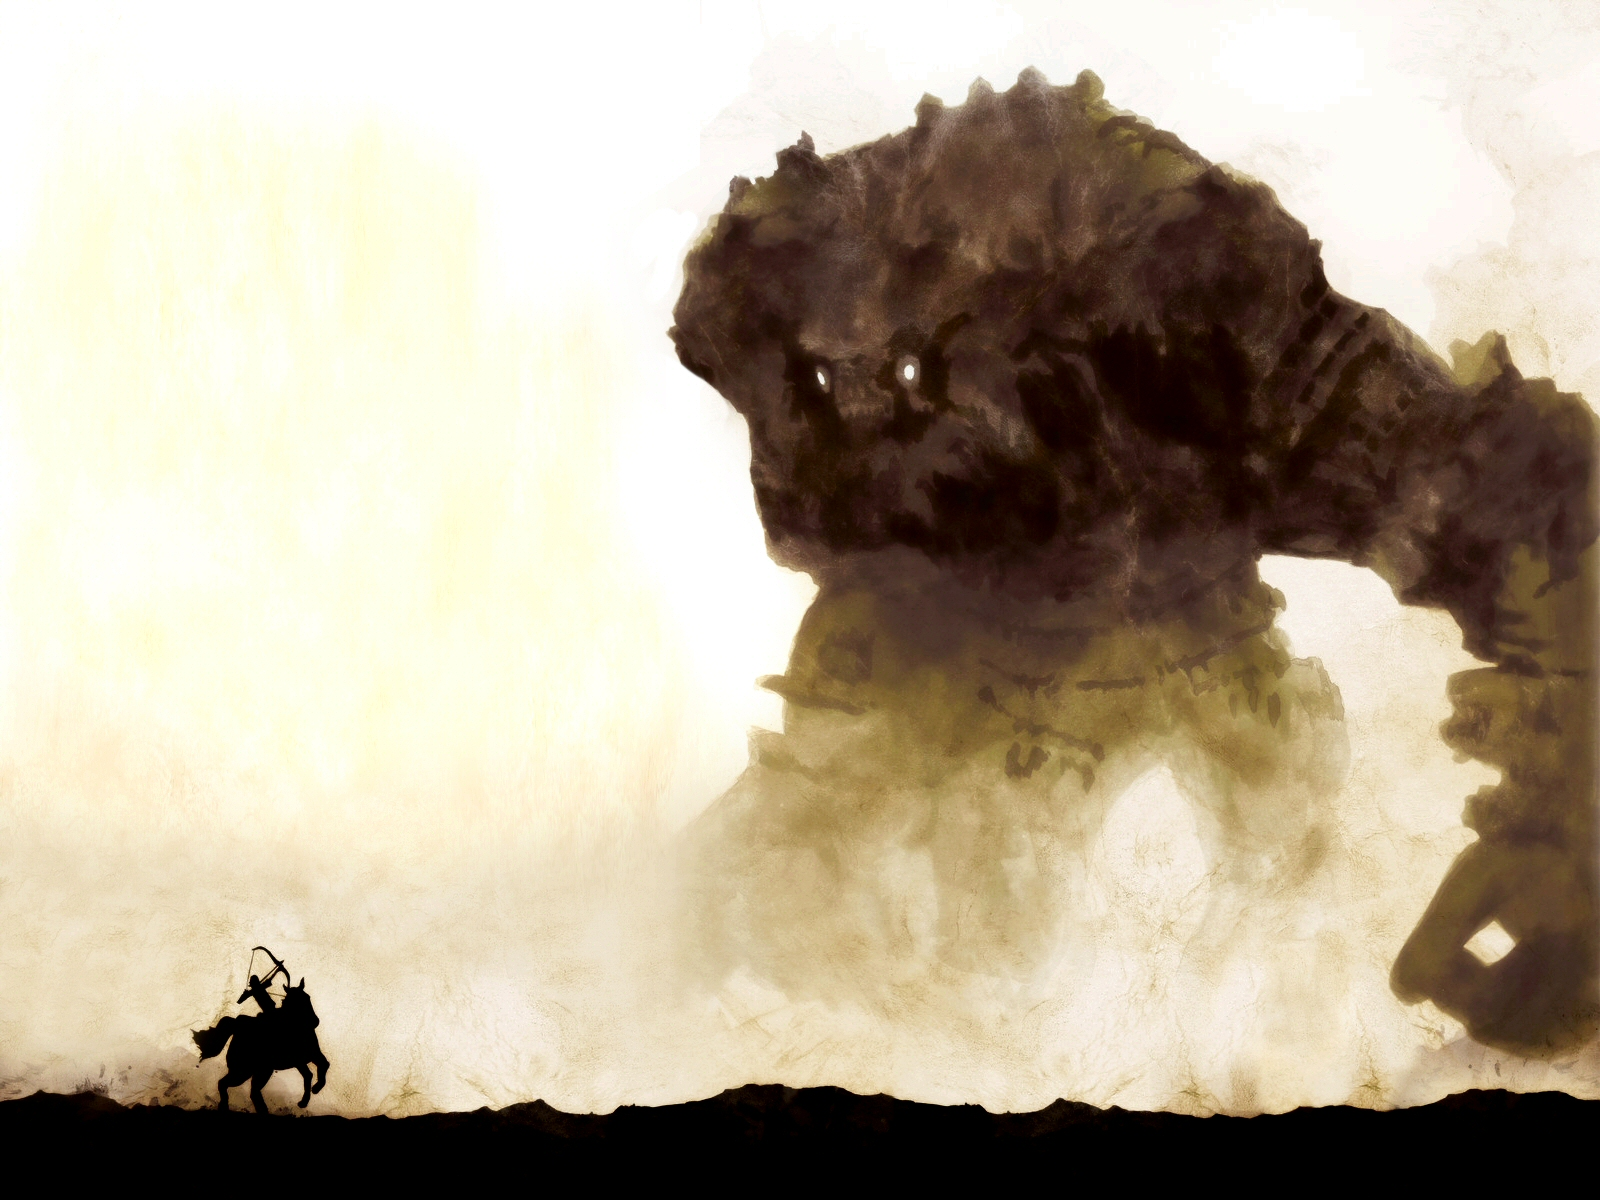 Resultado de imagen para shadow of the colossus